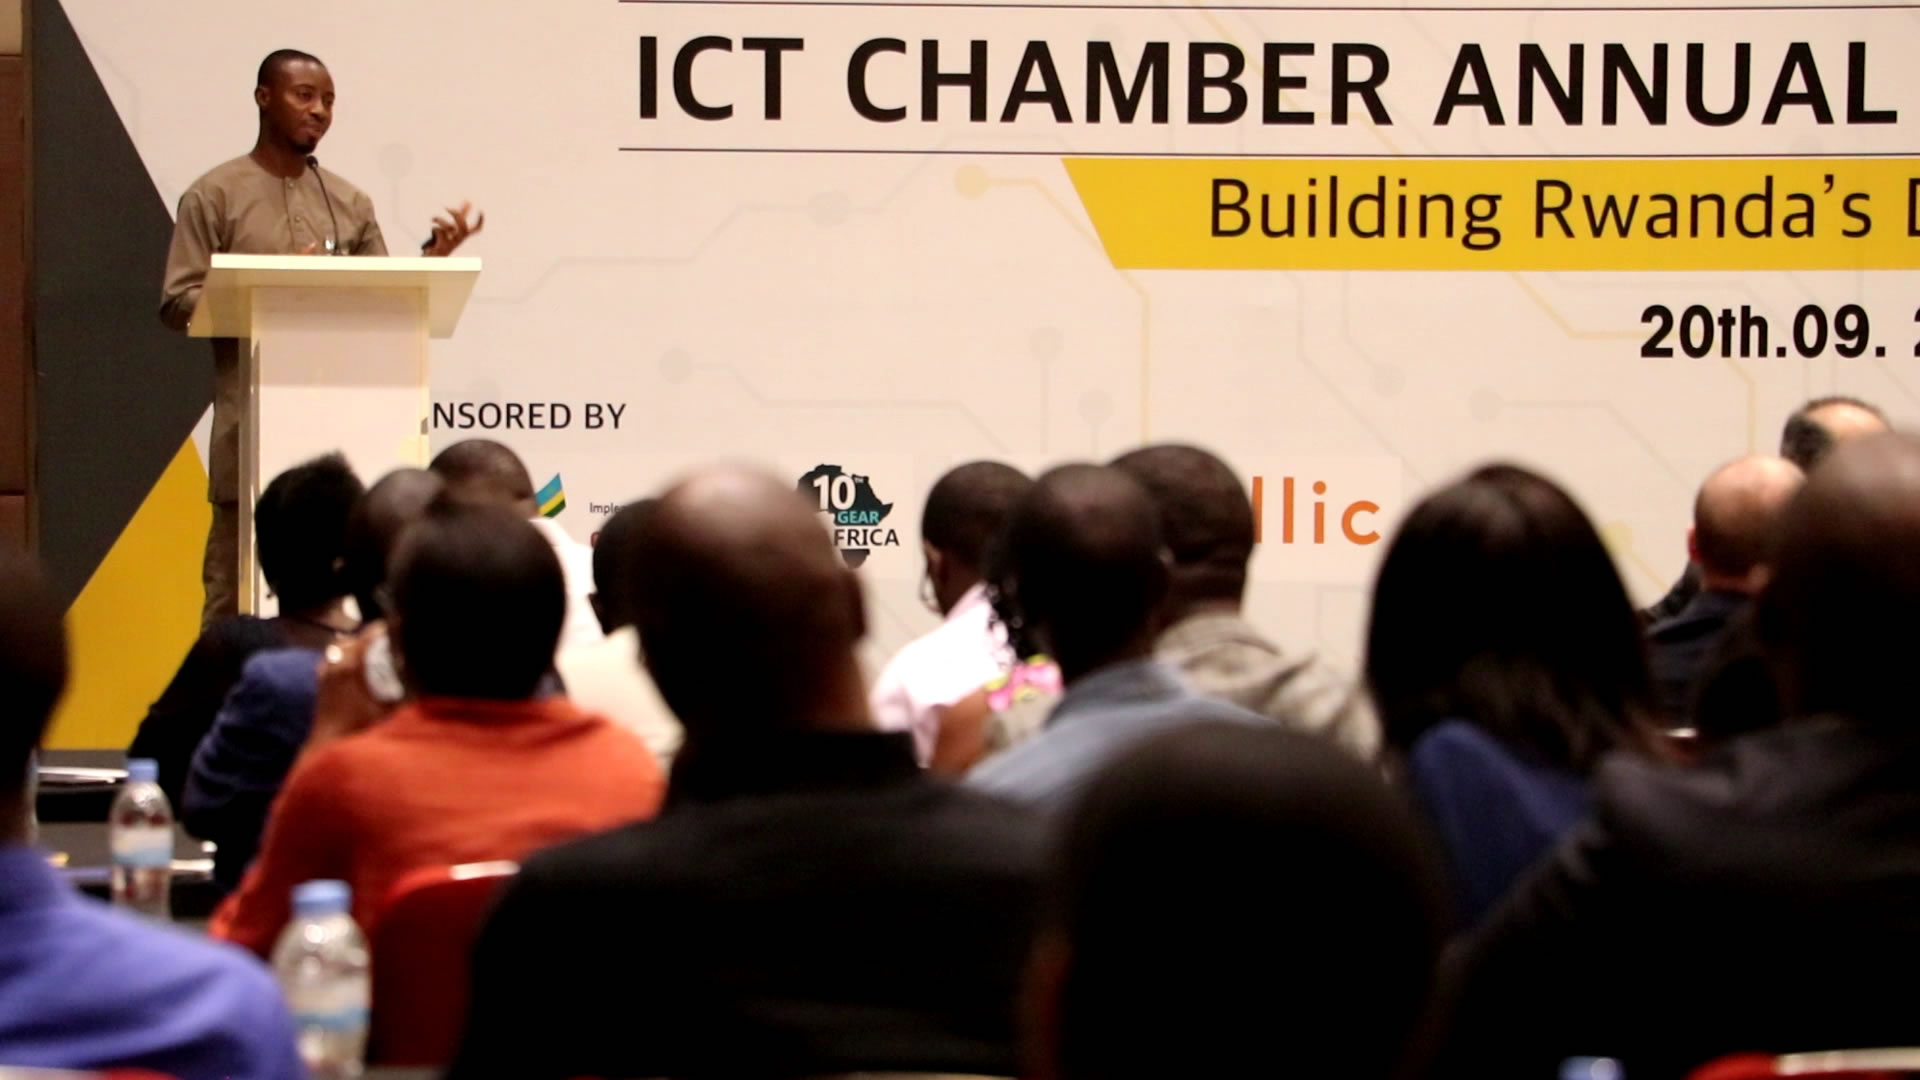 10th Gear Africa Sponsors the Rwanda ICT Chamber Annual General Assembly